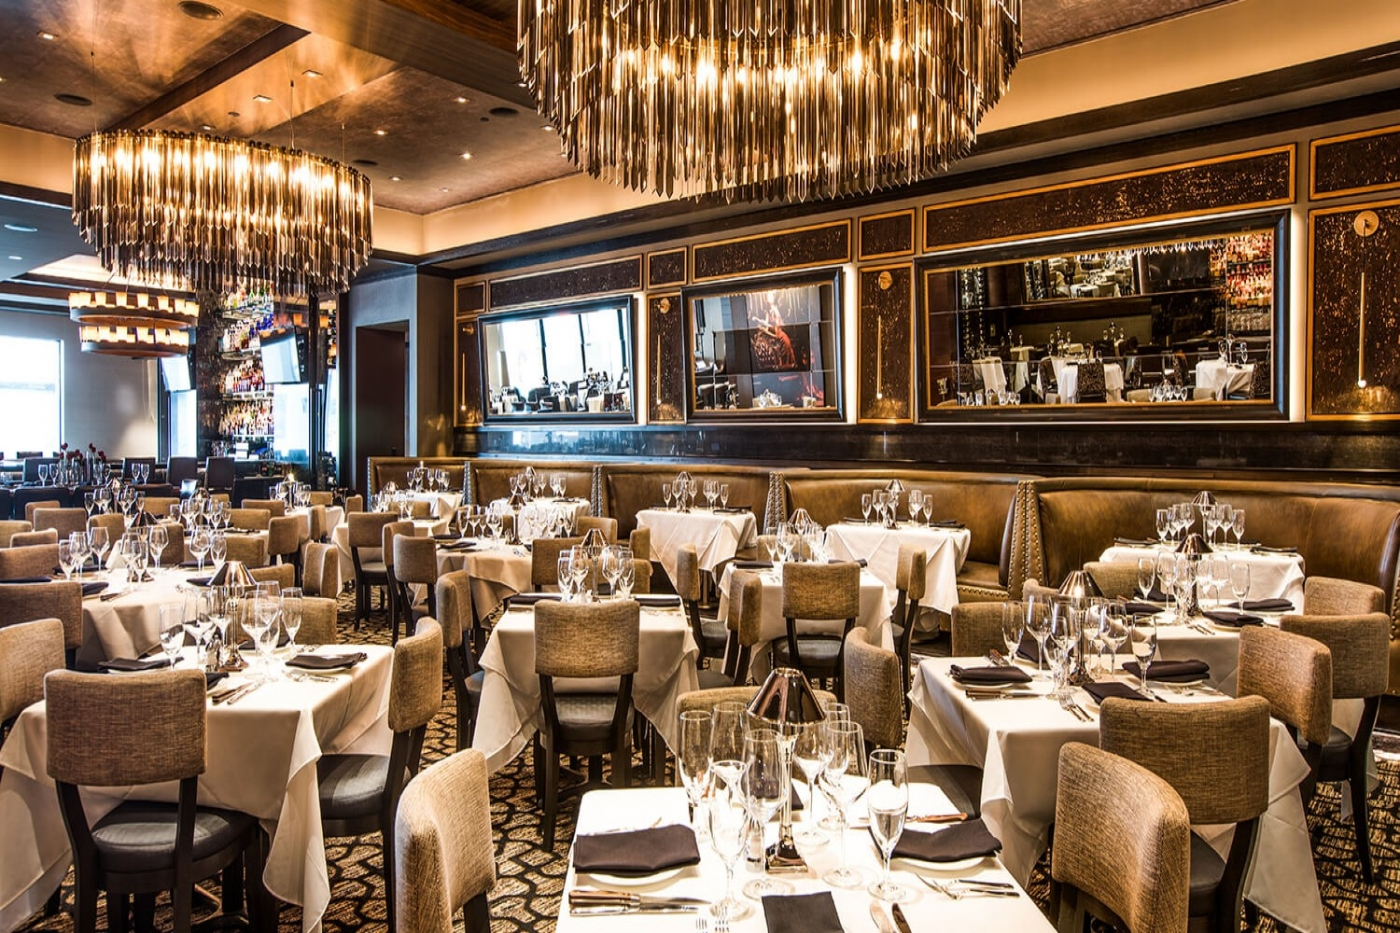 Luxury Restaurants In Houston - And Why You Should Go There luxury restaurant Luxury Restaurants In Houston, And Why You Should Go There FT Image 1400x933